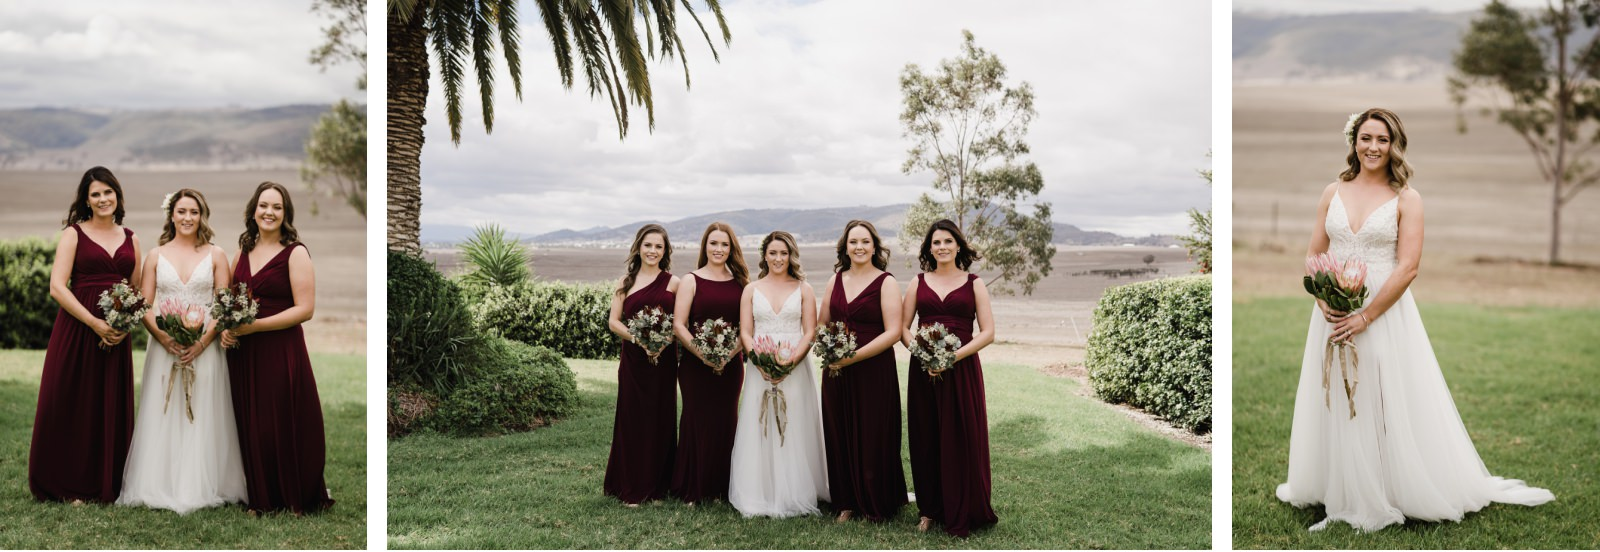 scone-wedding-photographer-upper-hunter-valley-16